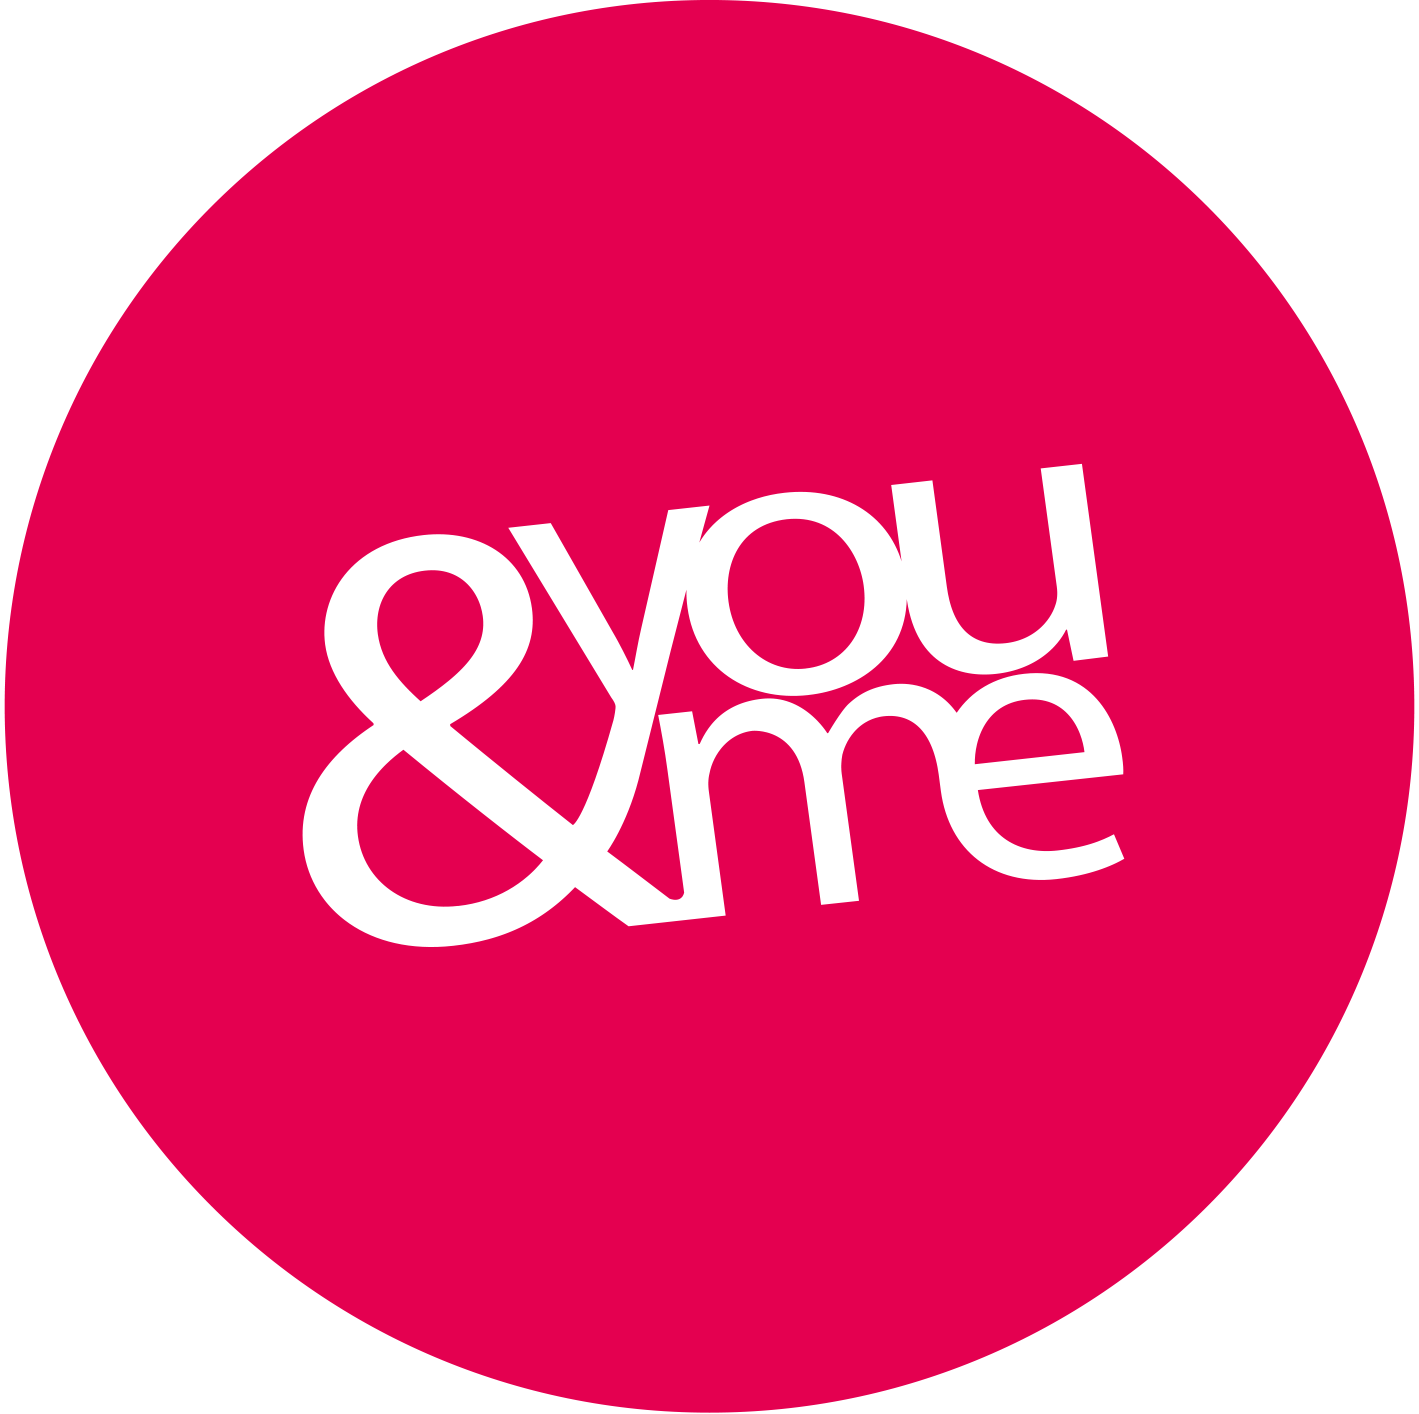 You&Me | Agence de design global